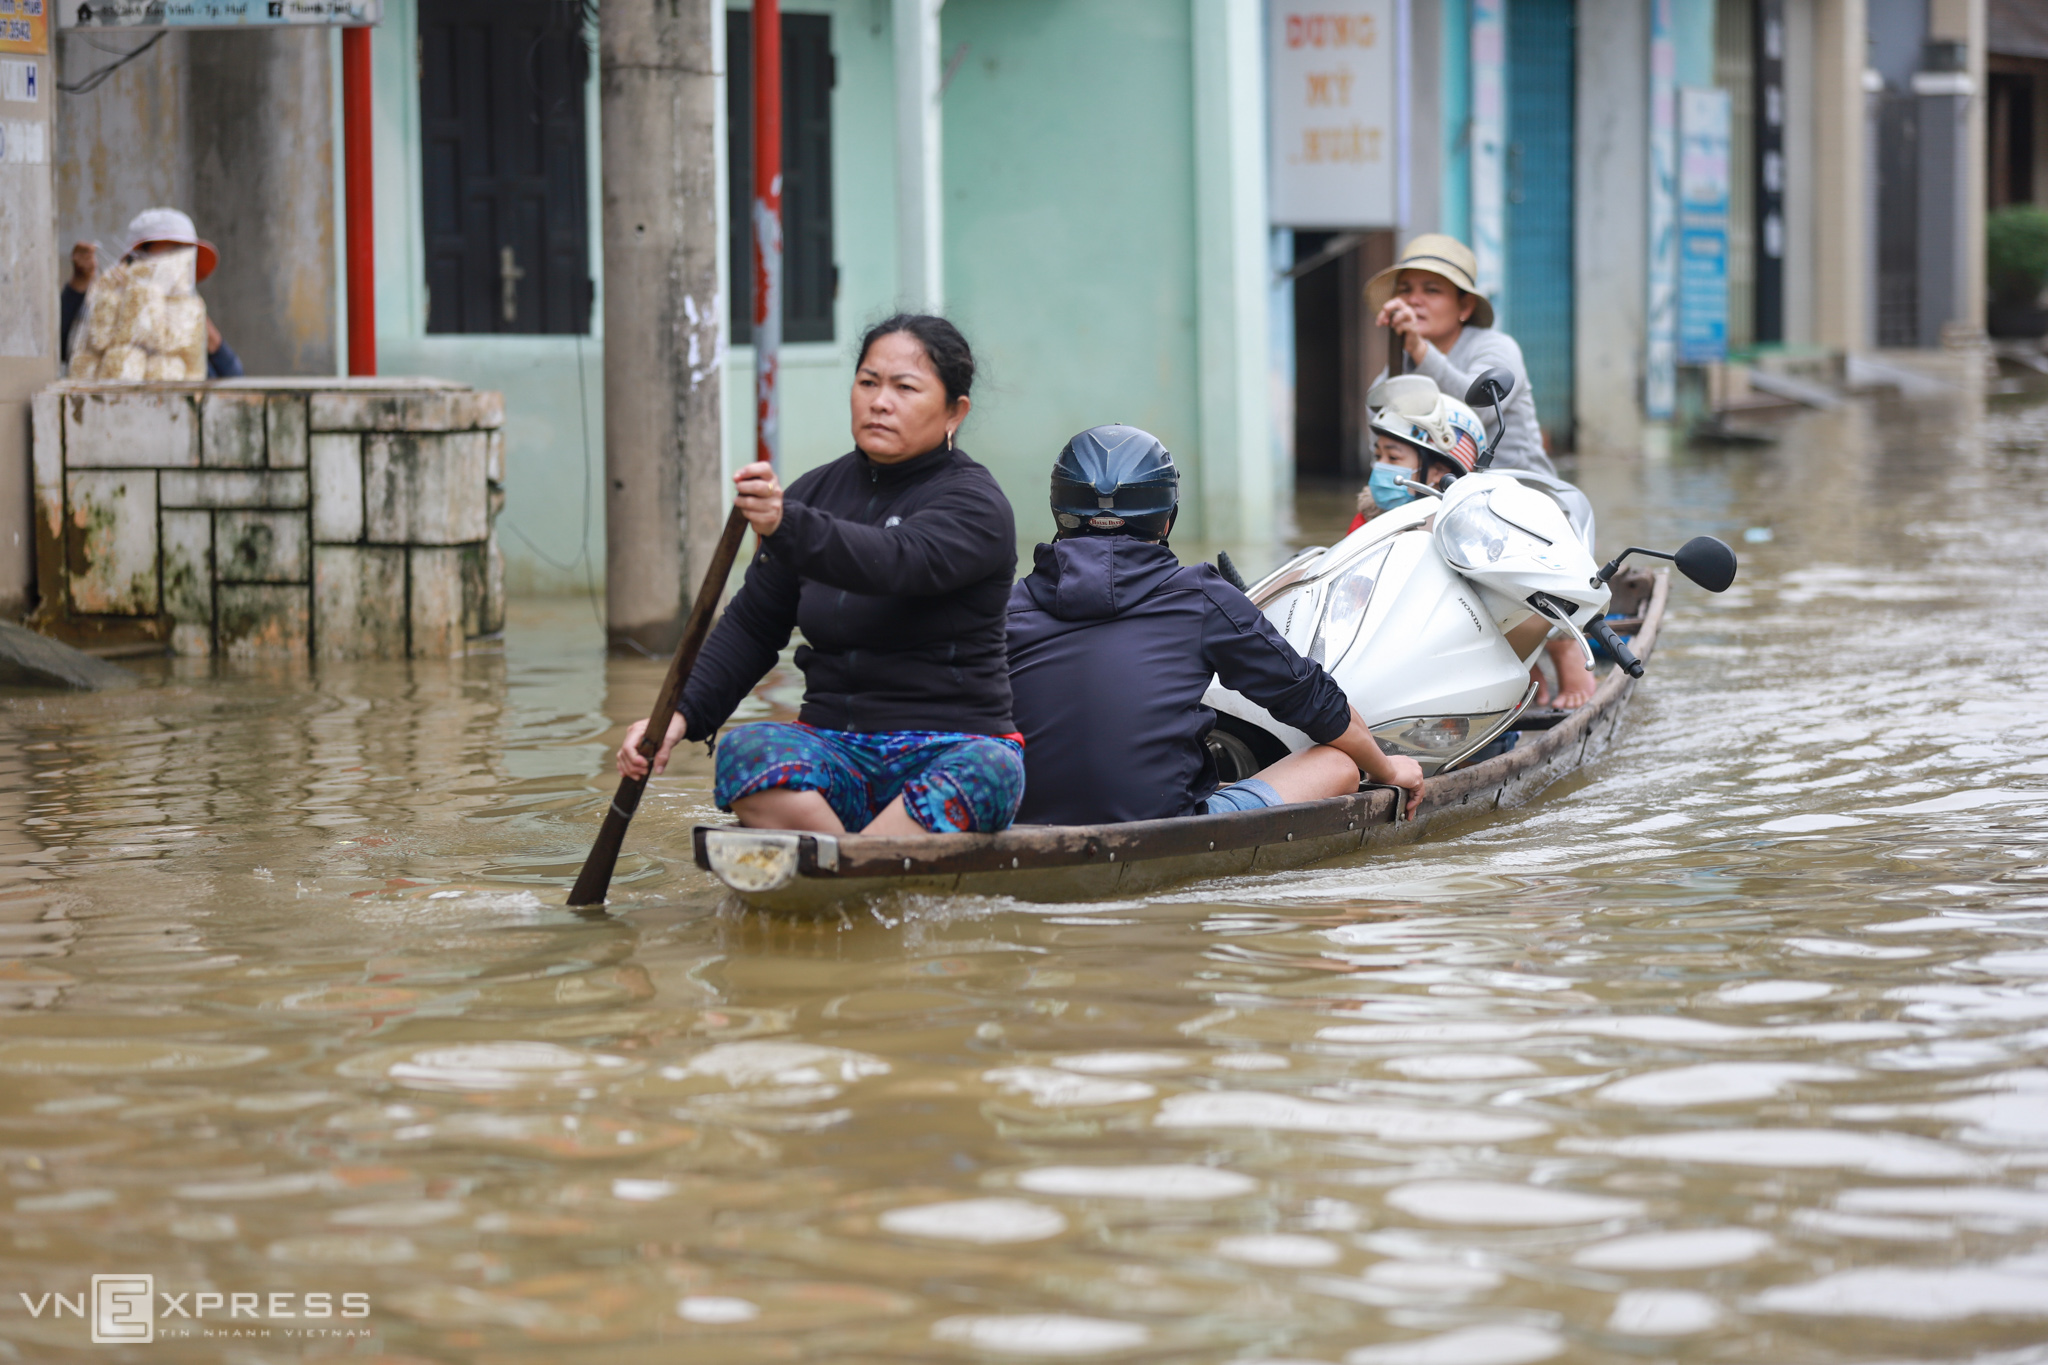 People use an aluminum boat to travel through a flooded street in Bao Vinh town in Thua Thien-Hue Province, central Vietnam, November 2020. Photo by VnExpress/Vo Thanh